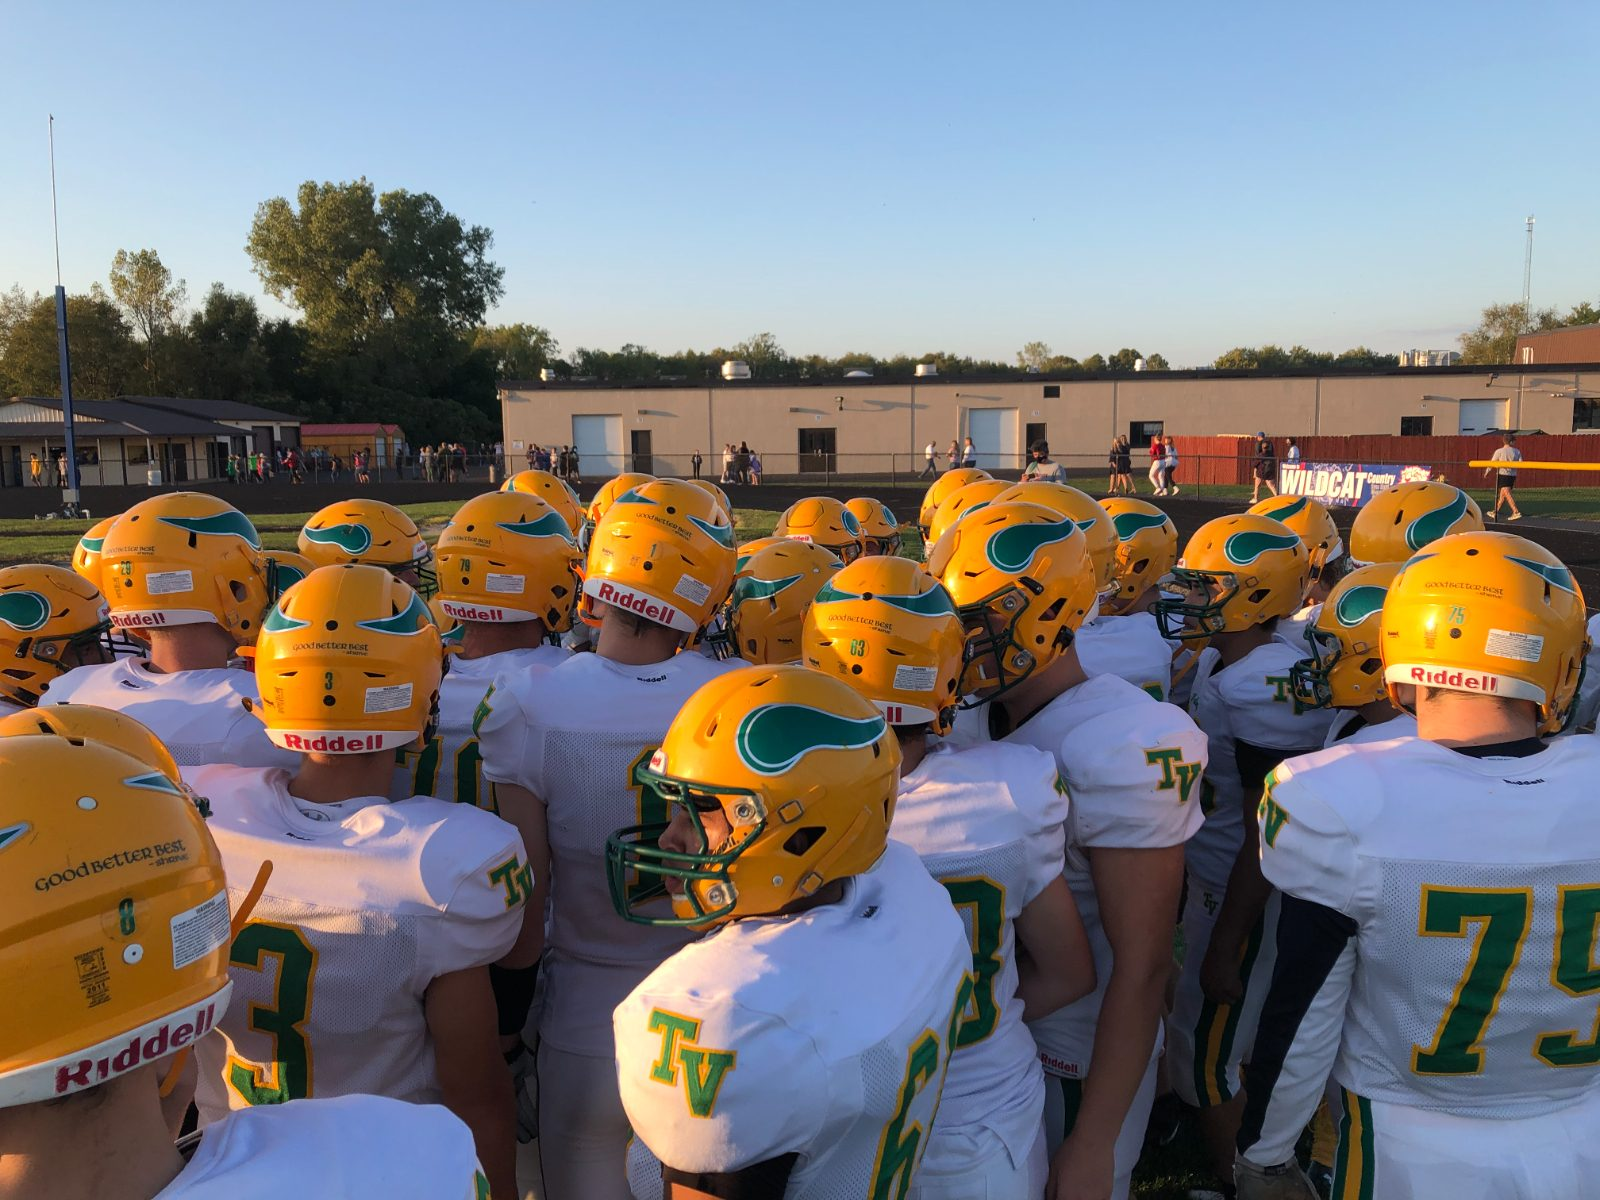 PHOTOS: Football @ Whitko 9/25/2020